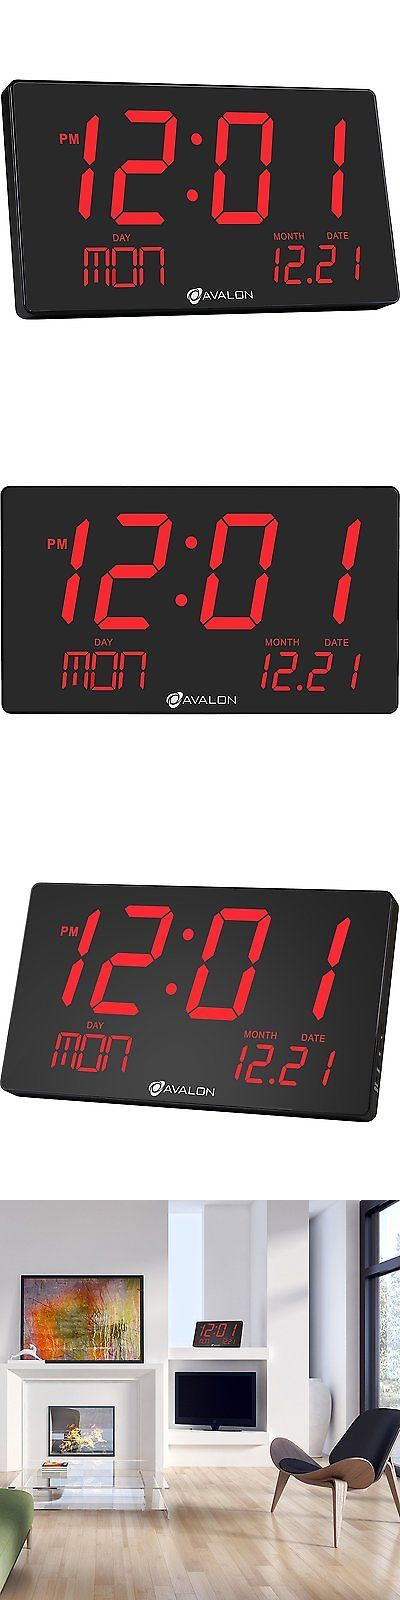 Wall Clocks 20561: Avalon Extra Large Display Red Led Oversized Digital Wall Shelf Clock With Easy -> BUY IT NOW ONLY: $50.94 on eBay!